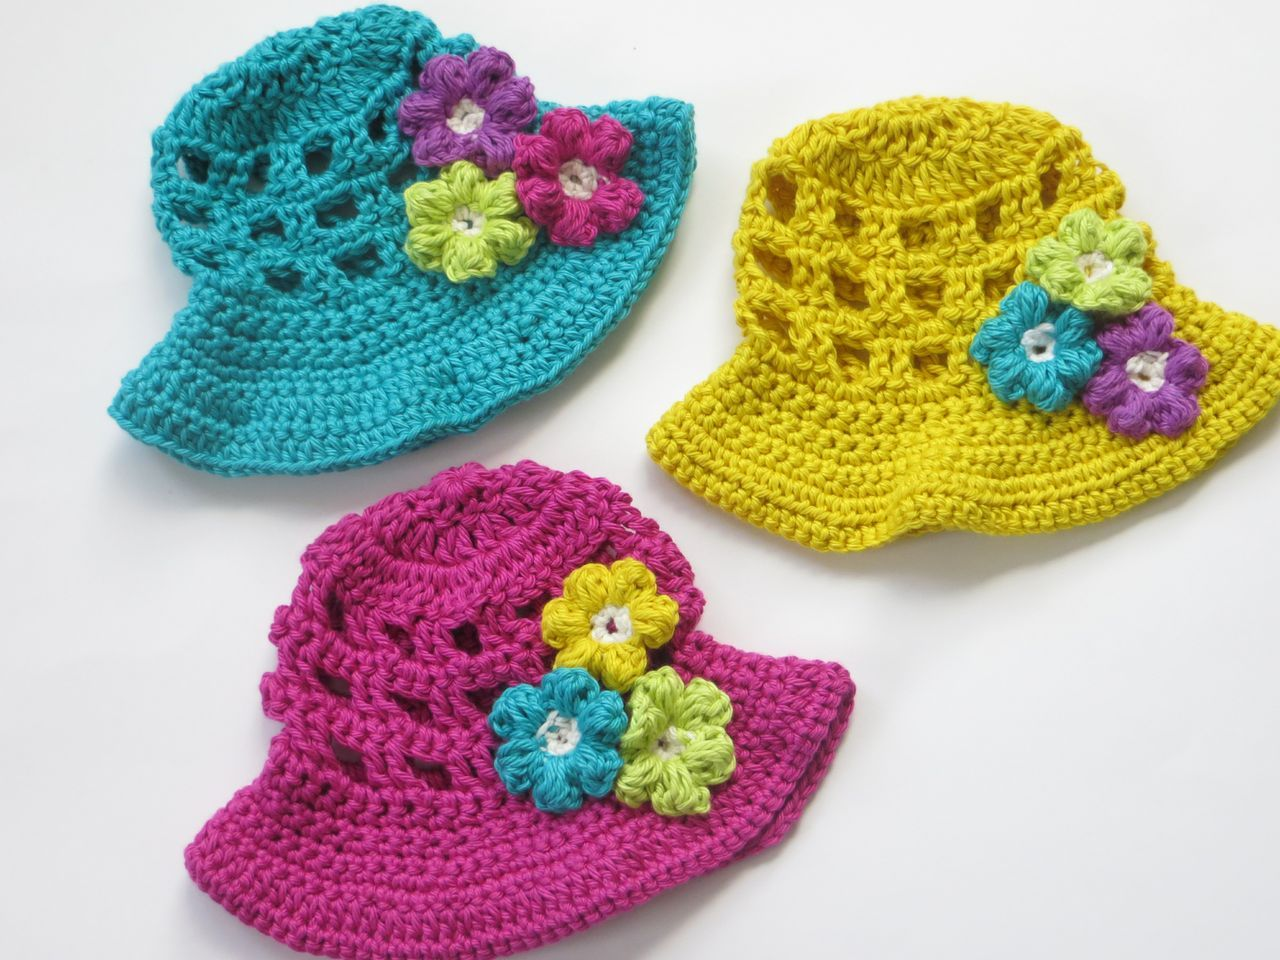 Sun Hat for Girls Crochet Pattern - Knitting Patterns and ...